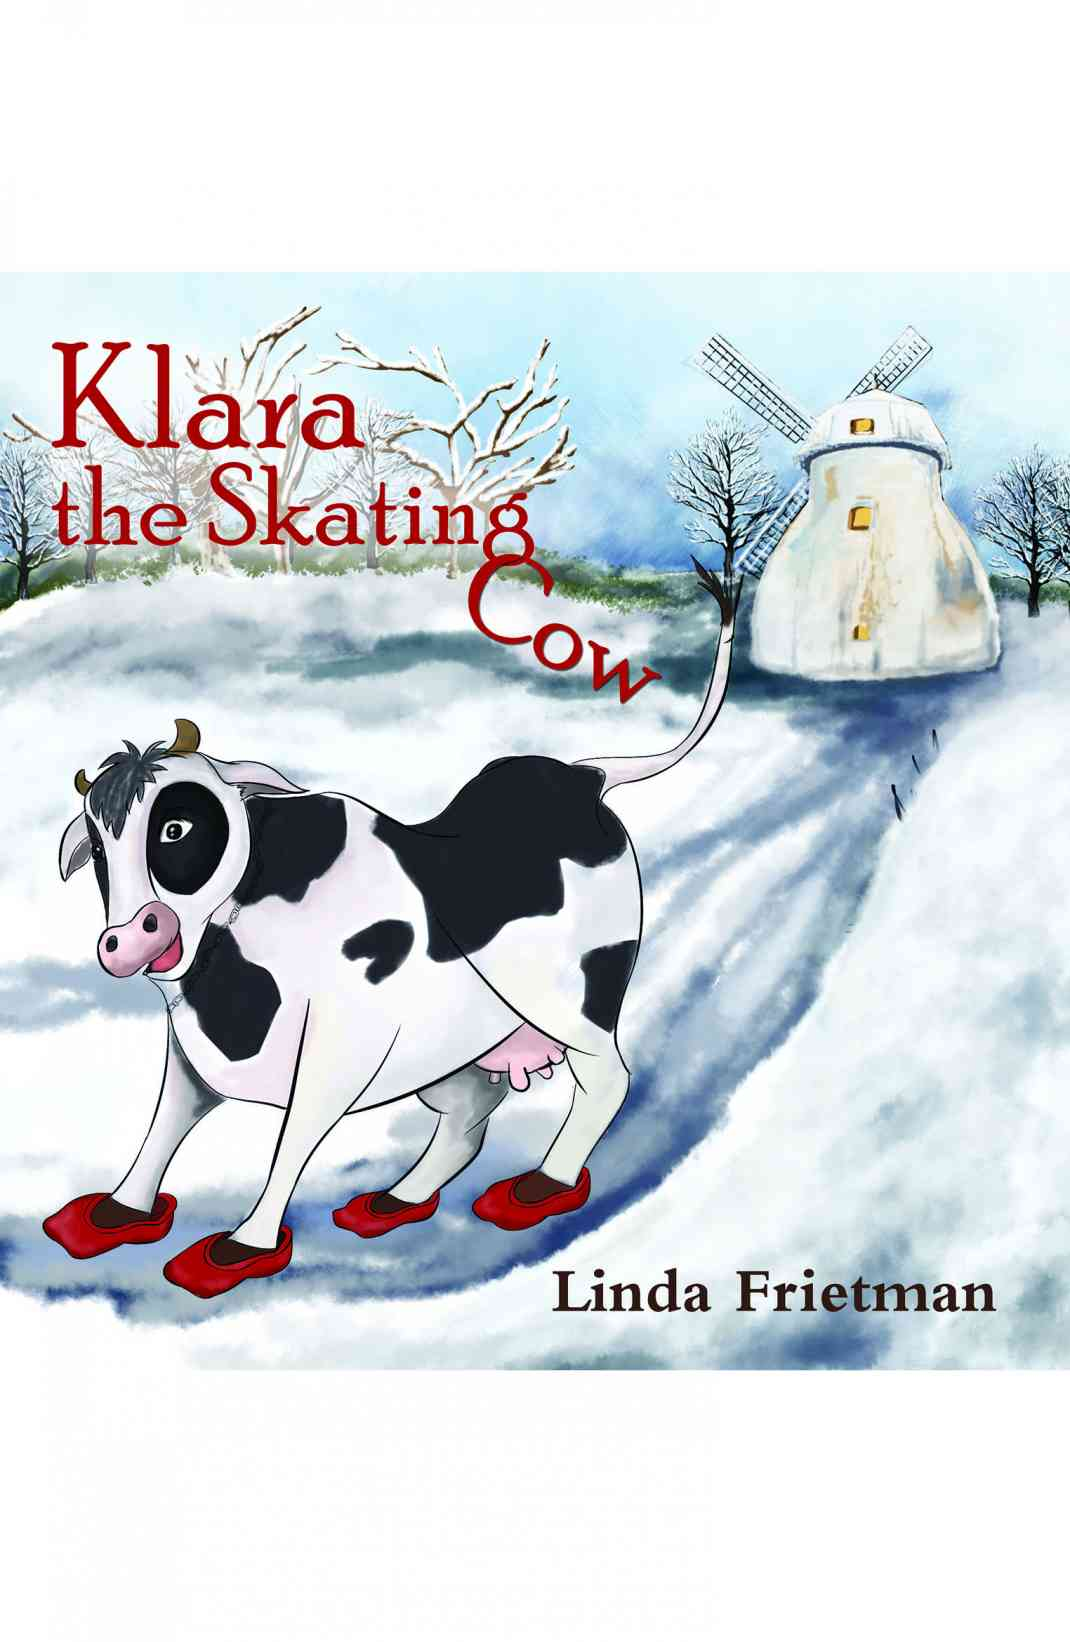 Klara the Skating Cow